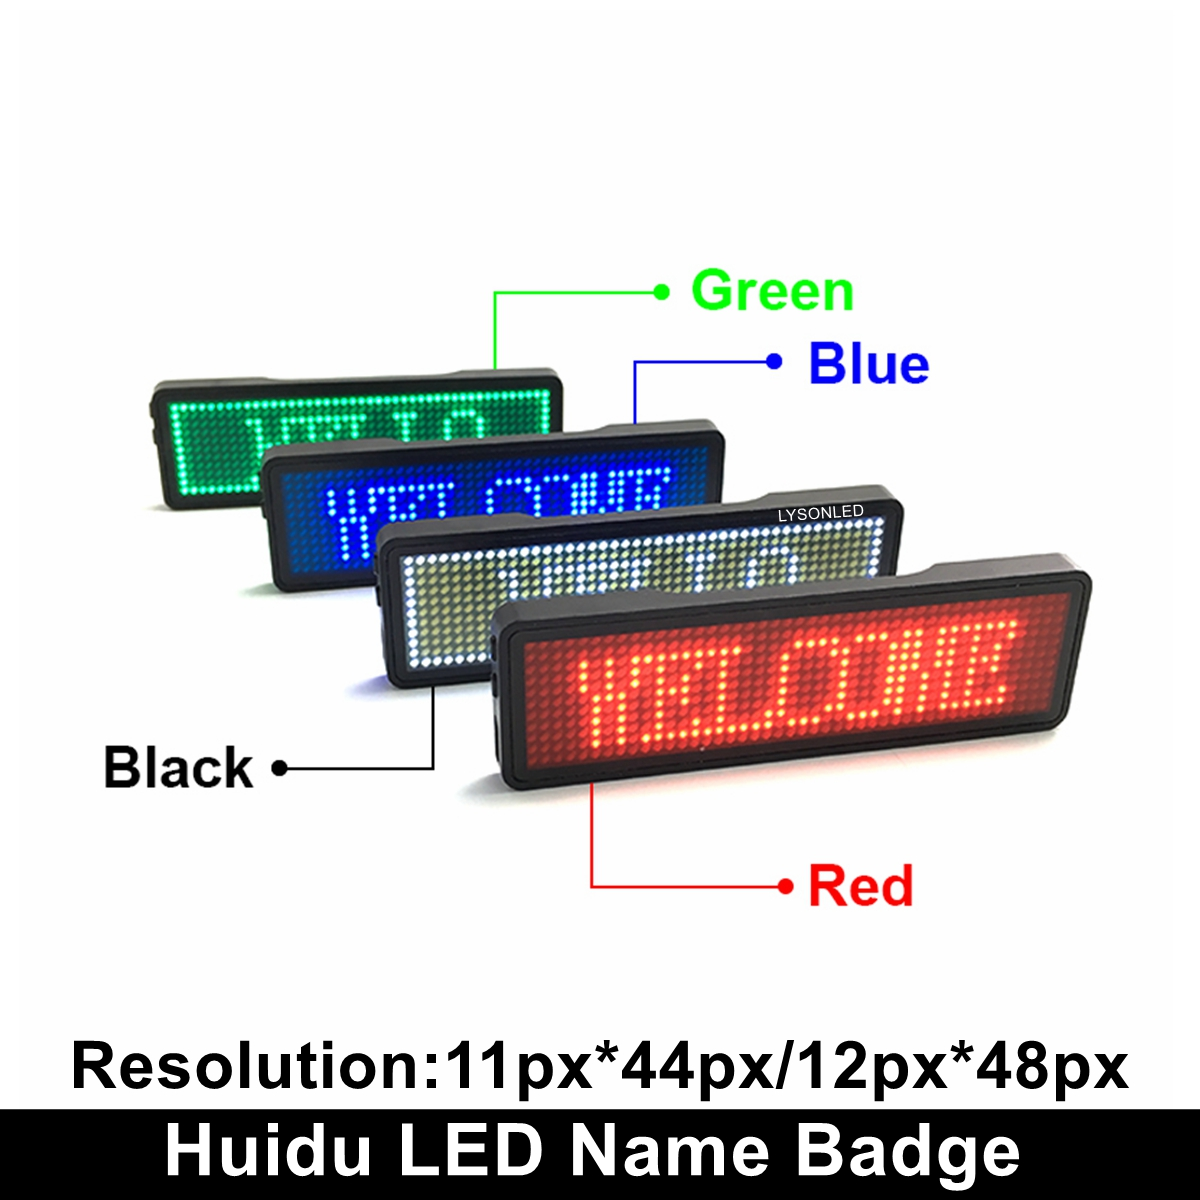 Special Offer 48x12 Dots Blue Color Rechargeable Led Scrolling Name Badge,  Hot Moving Text Display Business Card Tag